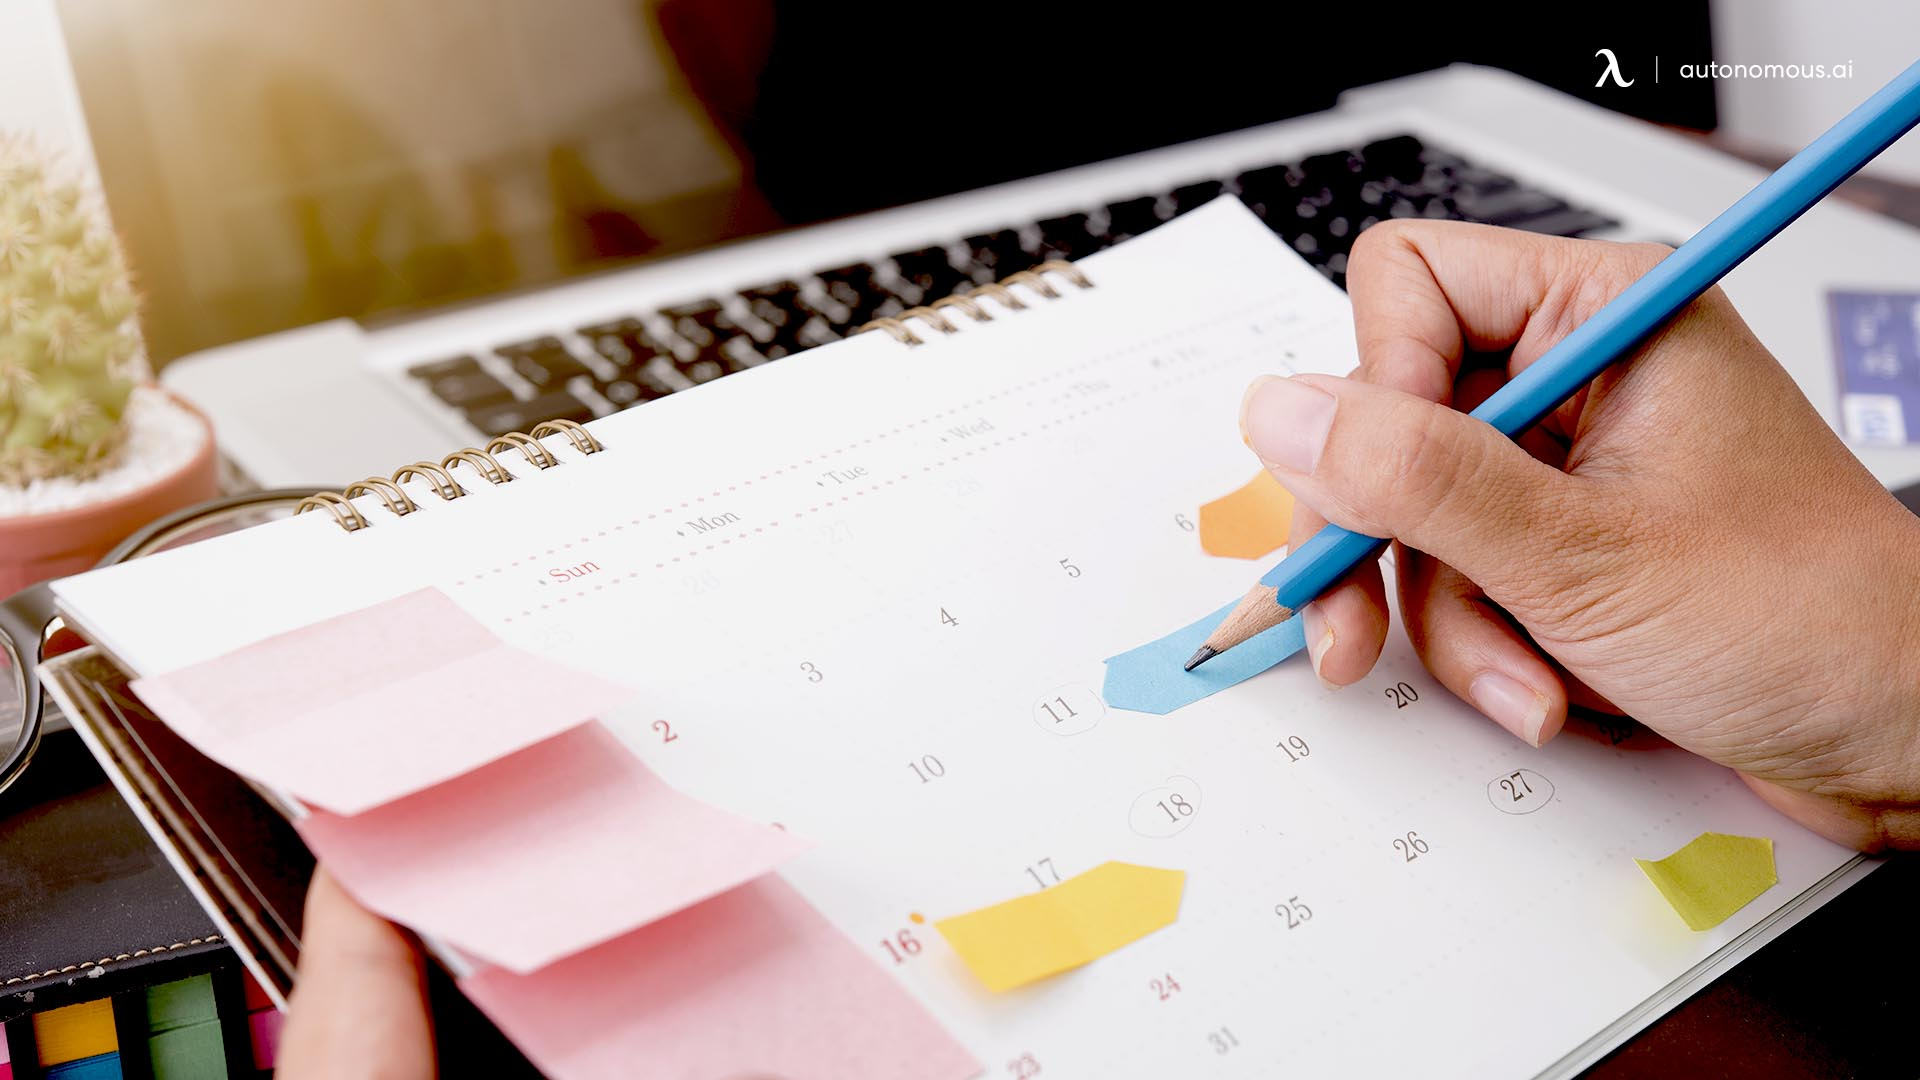 Prioritizing what is essential and planning your day